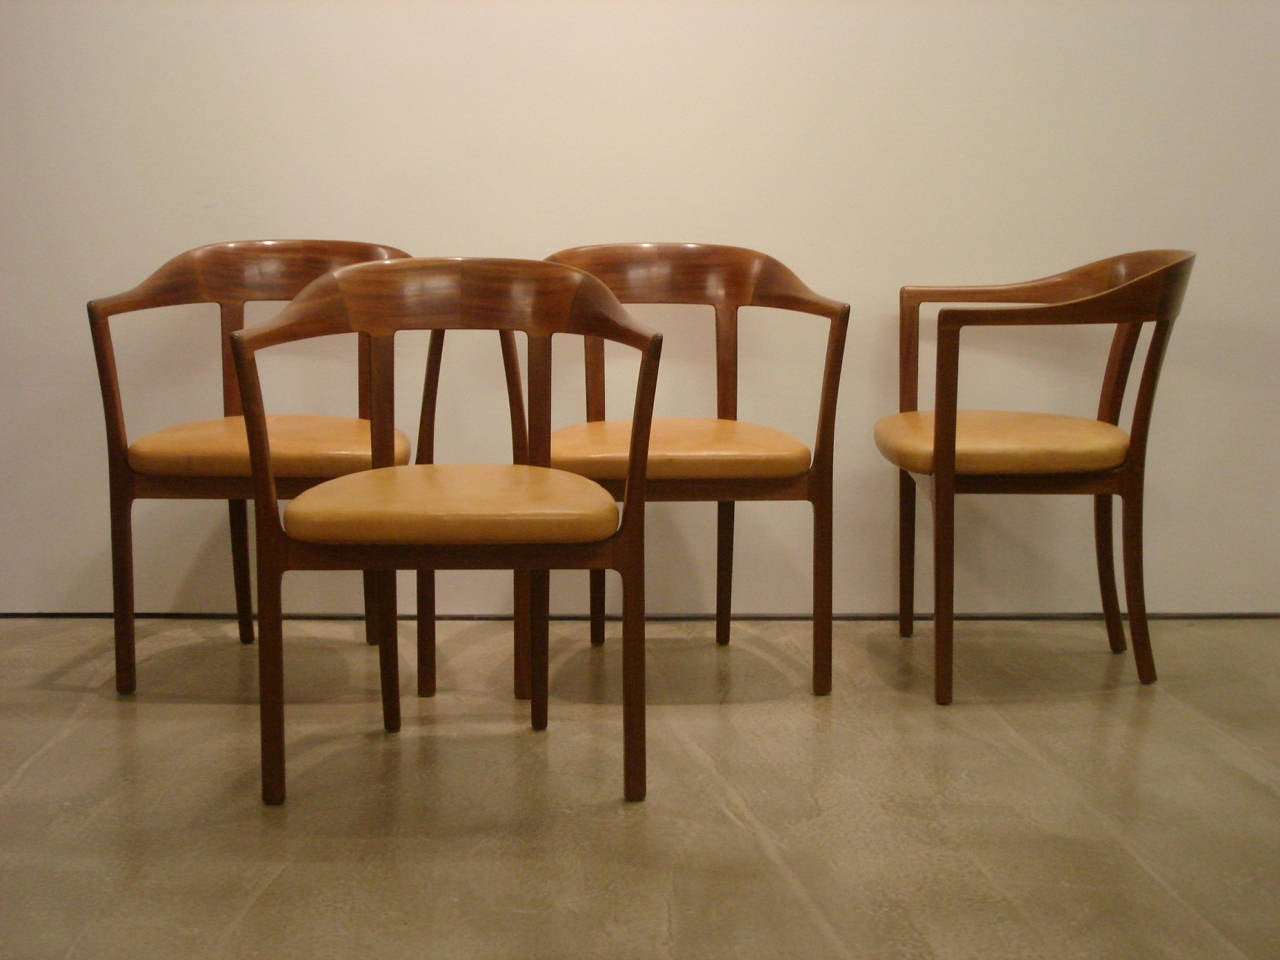 Ole Wanscher, Set of Four 1958 Armchairs in Mahogany and Original Leather Seats For Sale 3